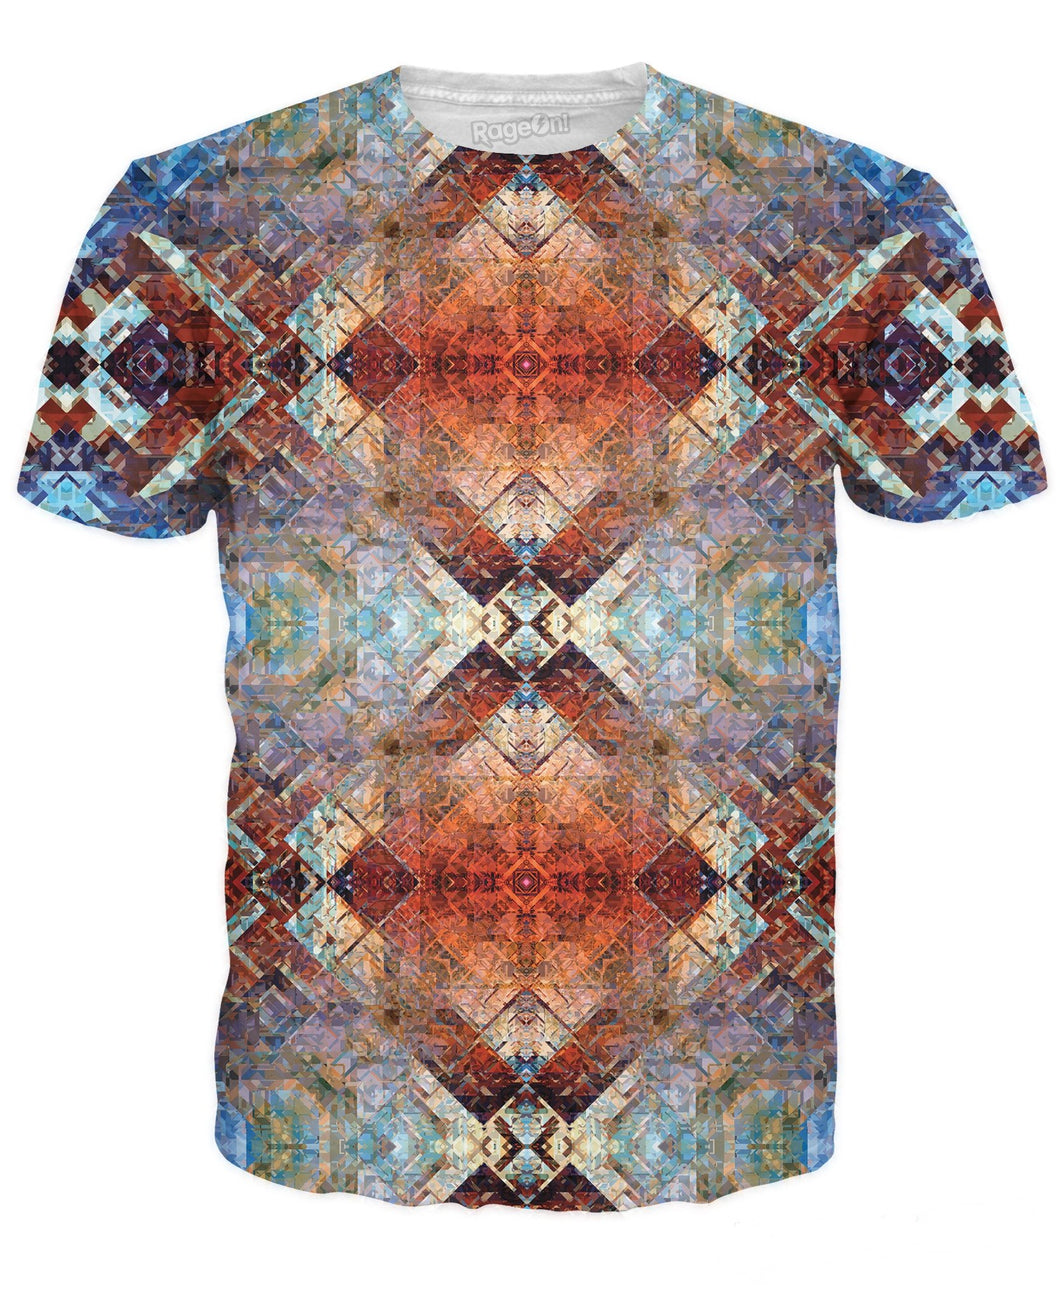 Aztec Temple T-Shirt